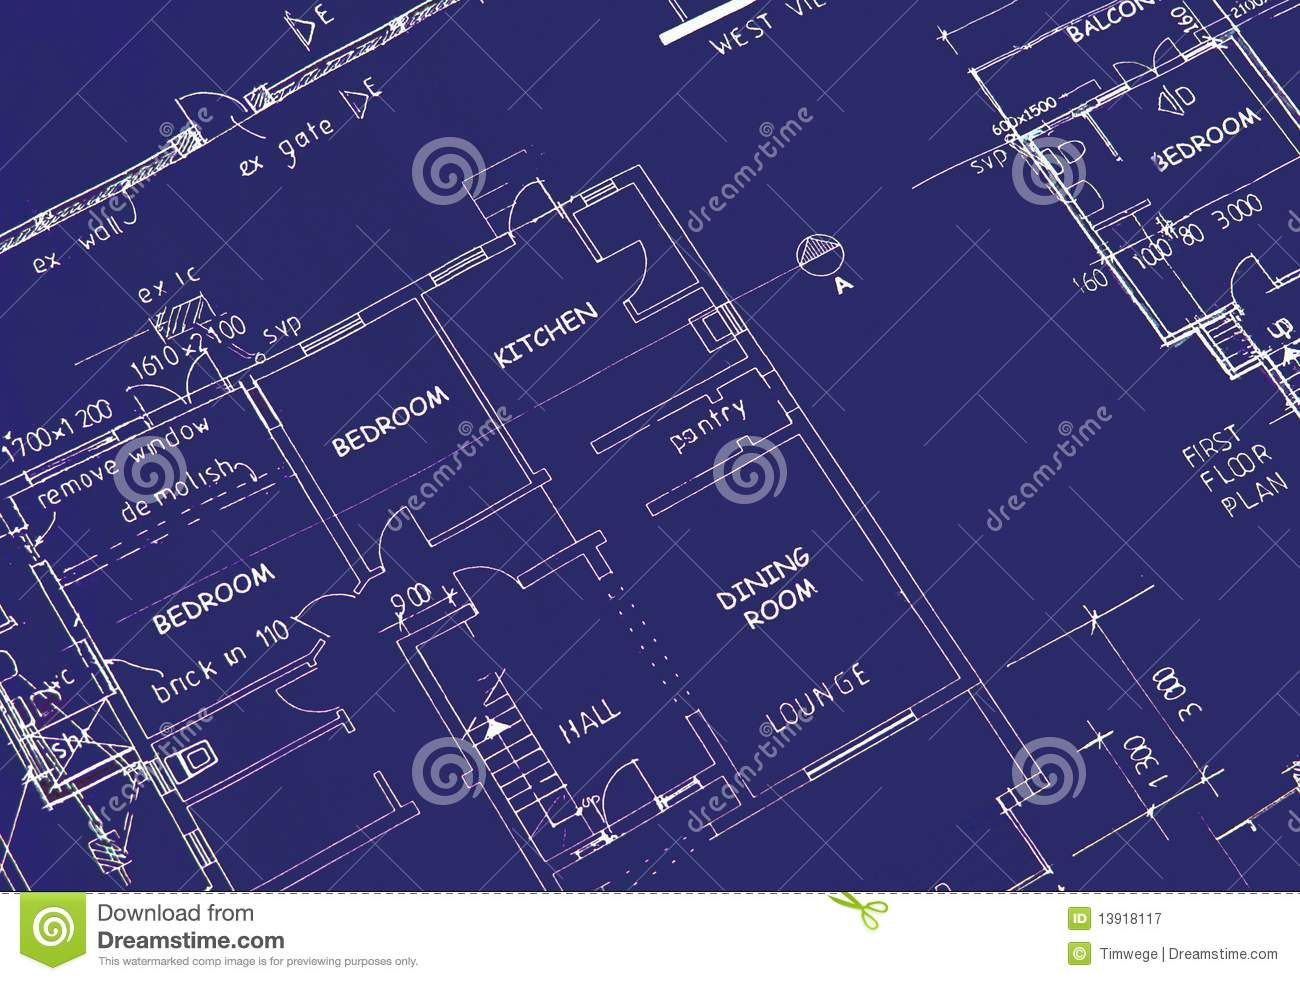 Blueprint of building plans stock image image of dining for Blueprints website